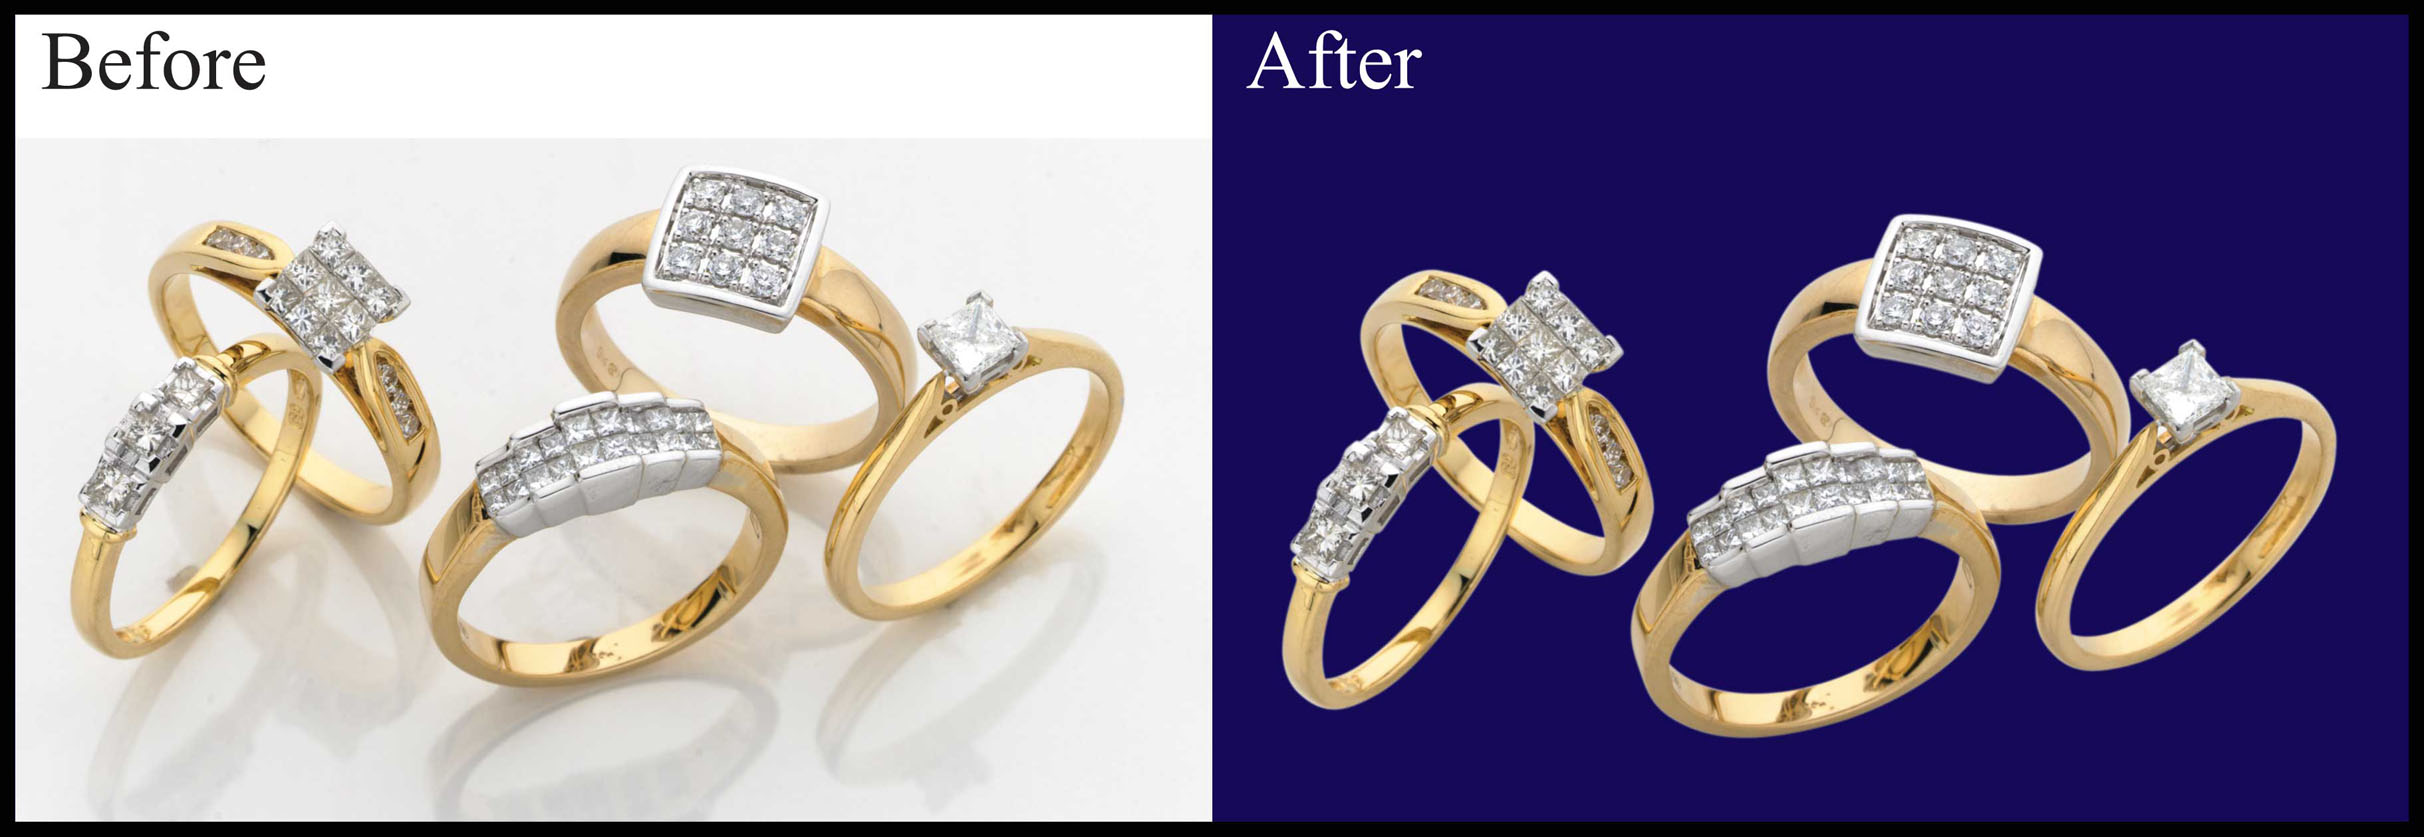 Clipping Path - Image Editing